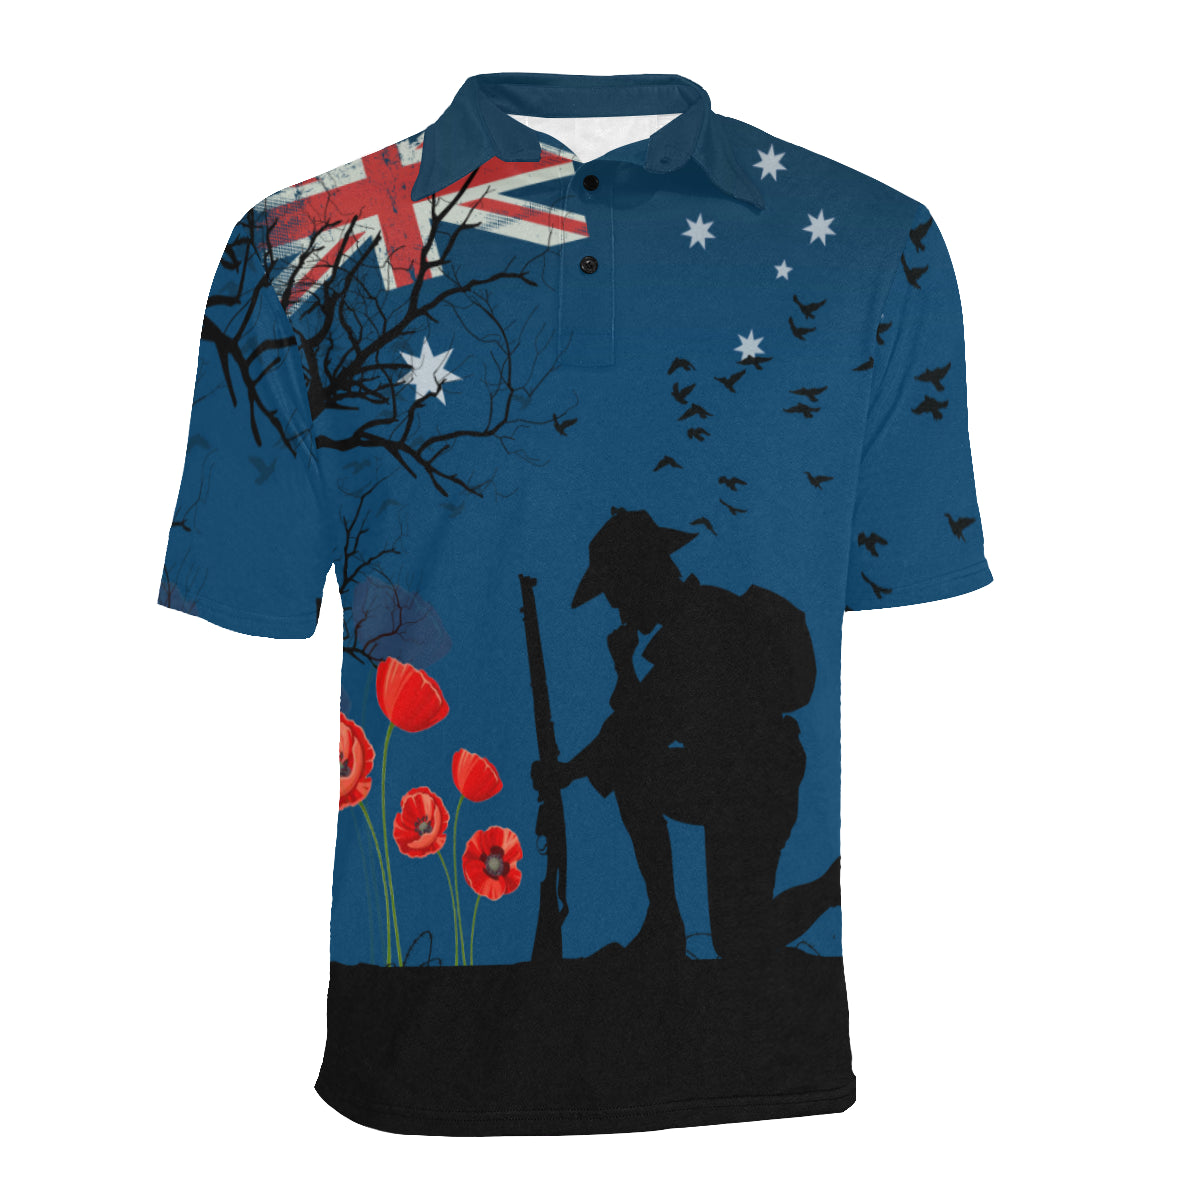 Anzac Australia Remembers Polo Shirt with Blue mix Black color - Front - For Women